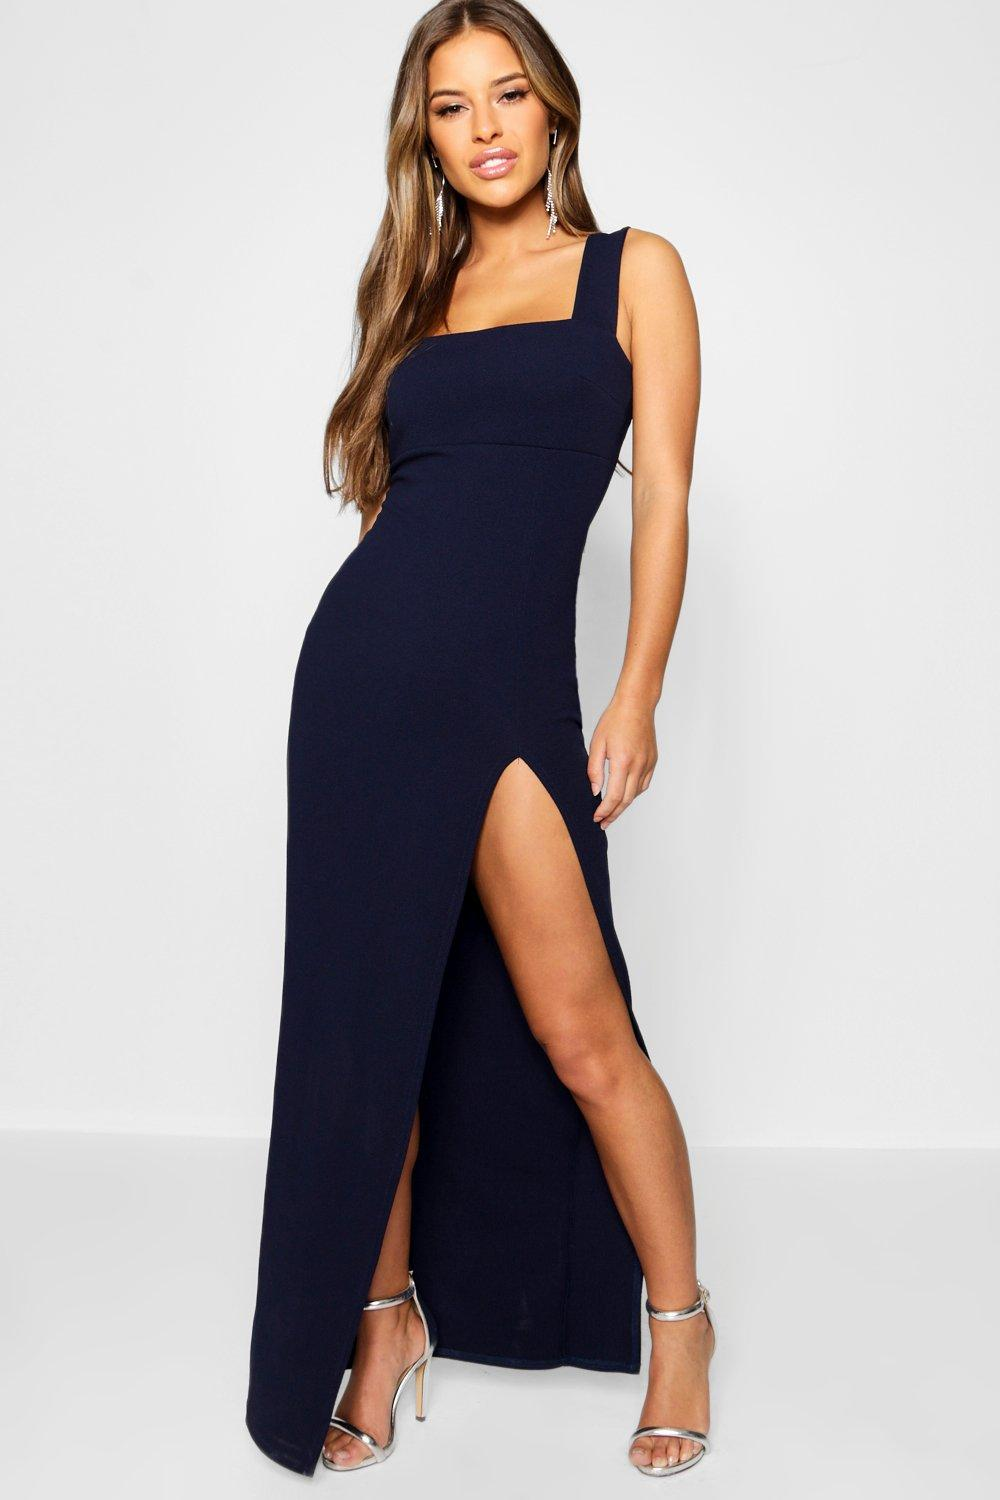 boohoo Womens Petite Square Neck Split Maxi Dress - Navy - 12, Navy